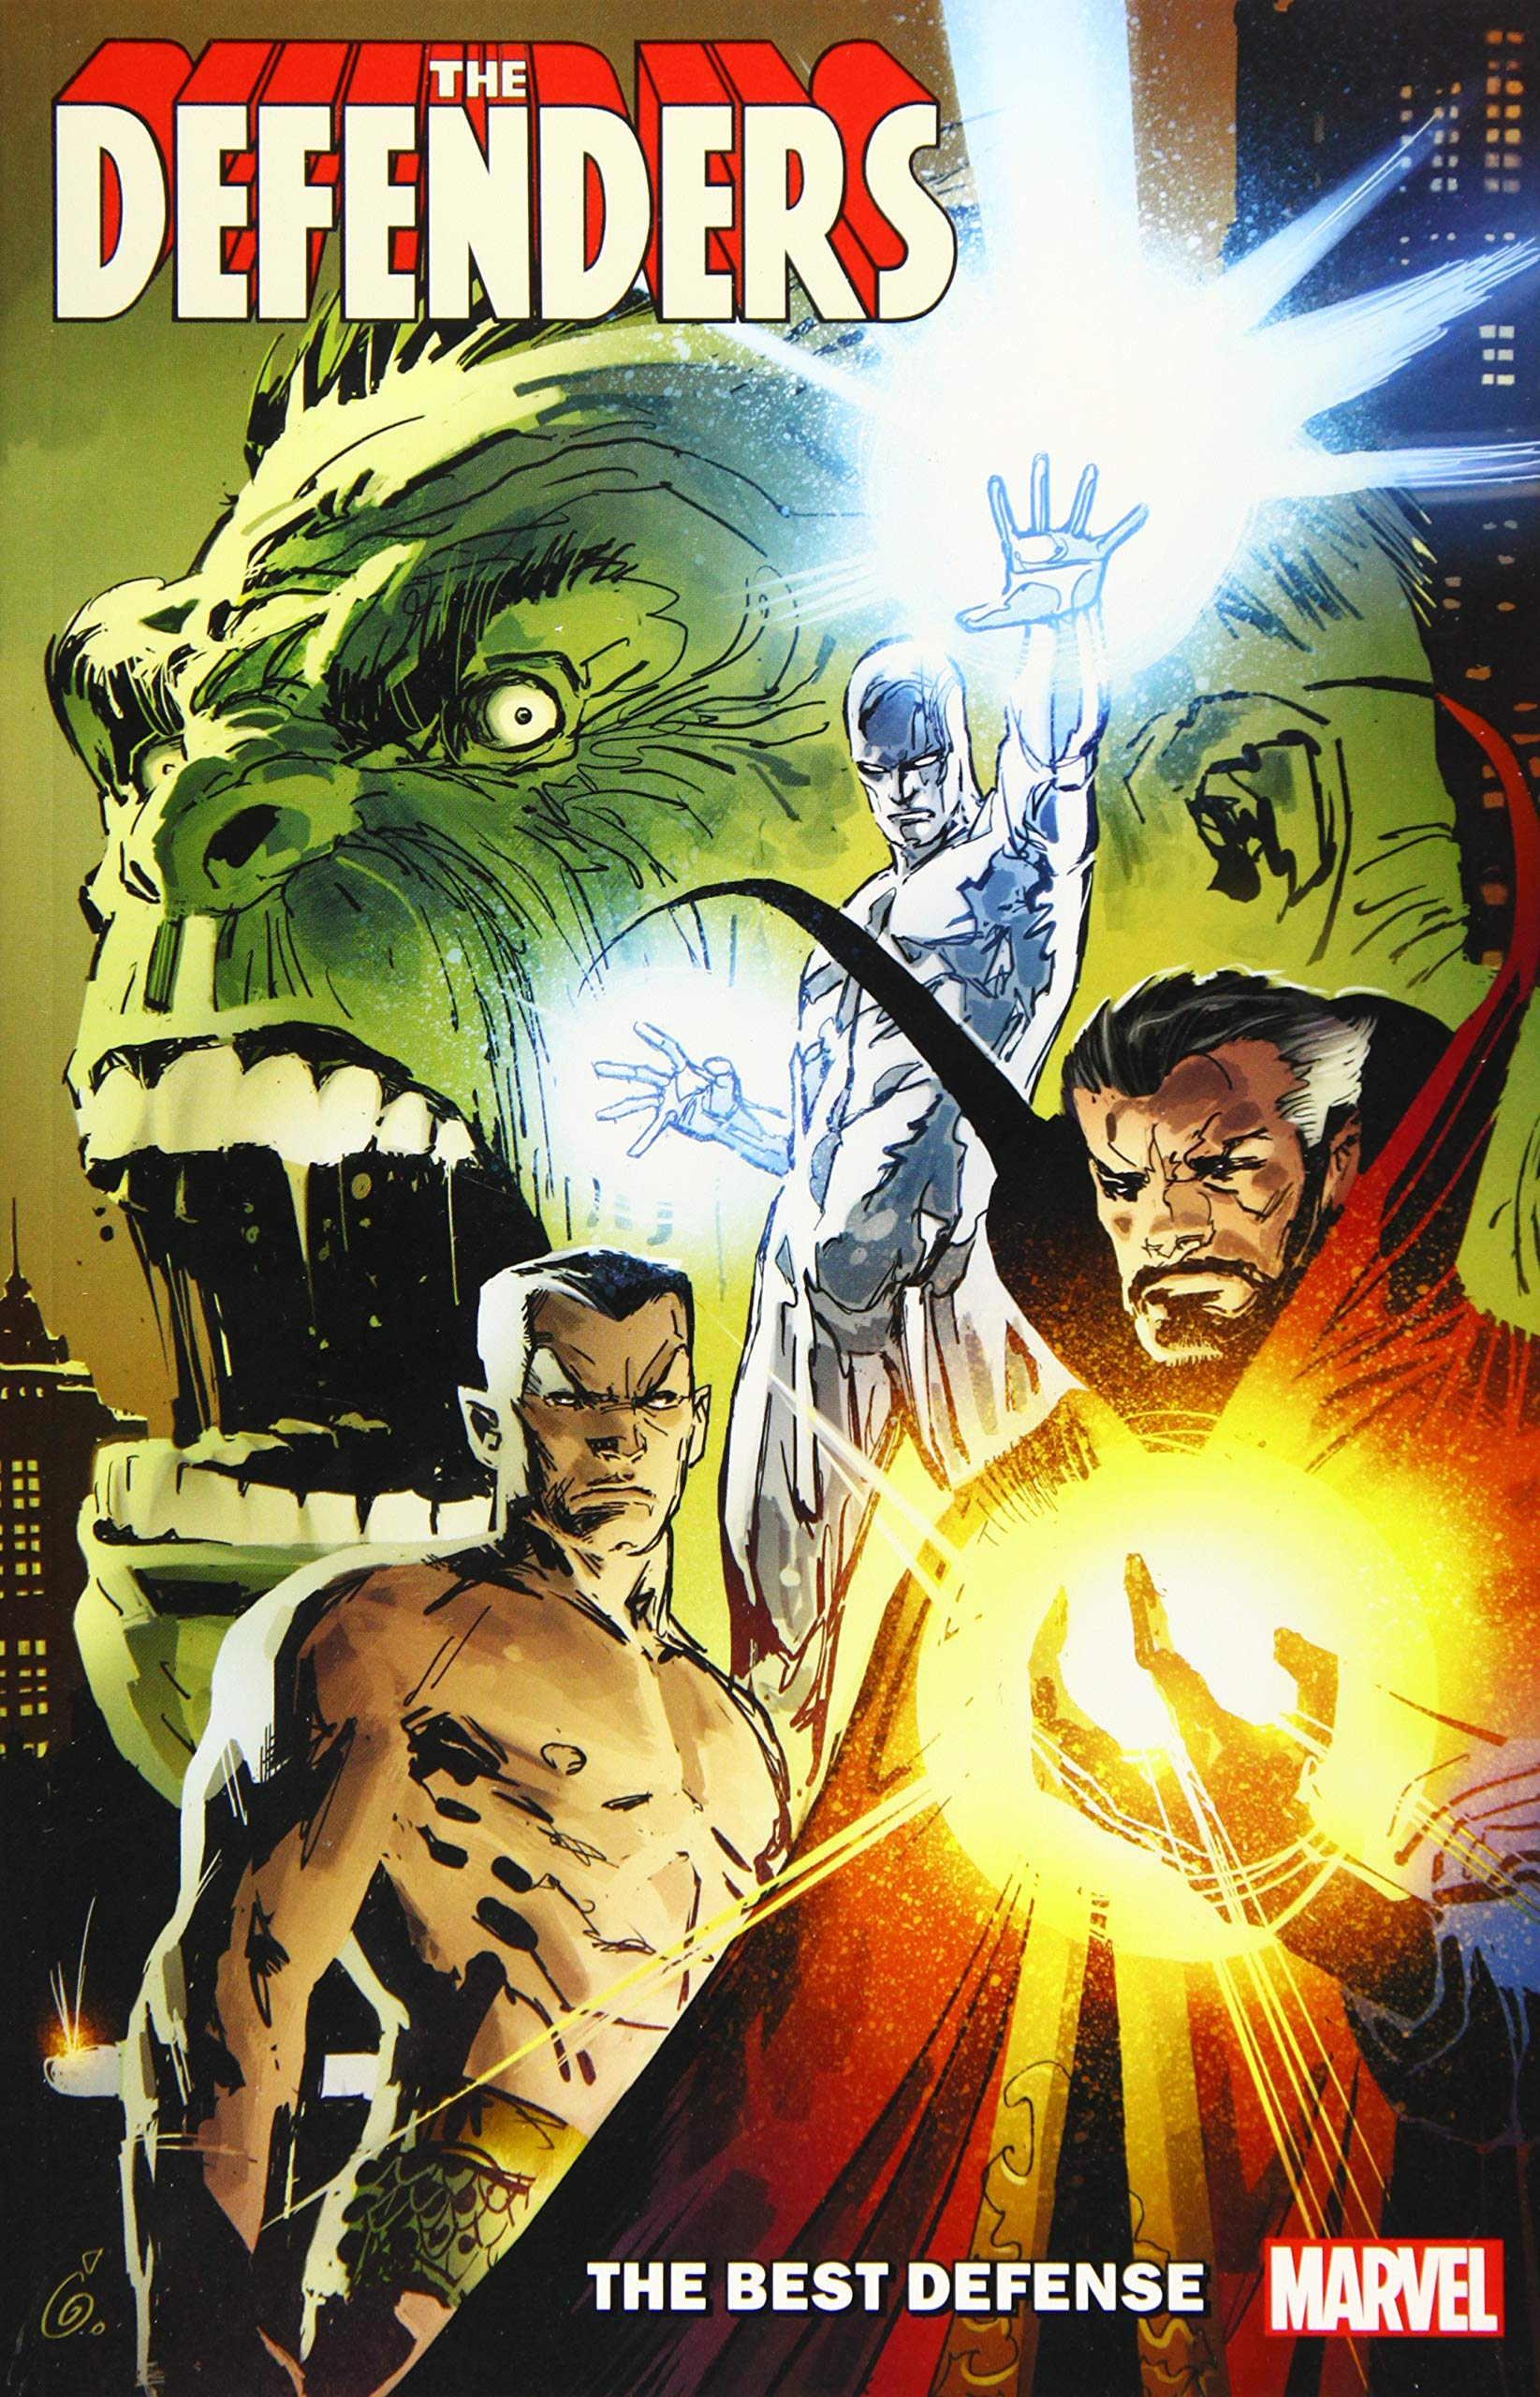 Amazon.com: Defenders: The Best Defense (The Defenders) (9781302916145):  Marvel Comics: Books